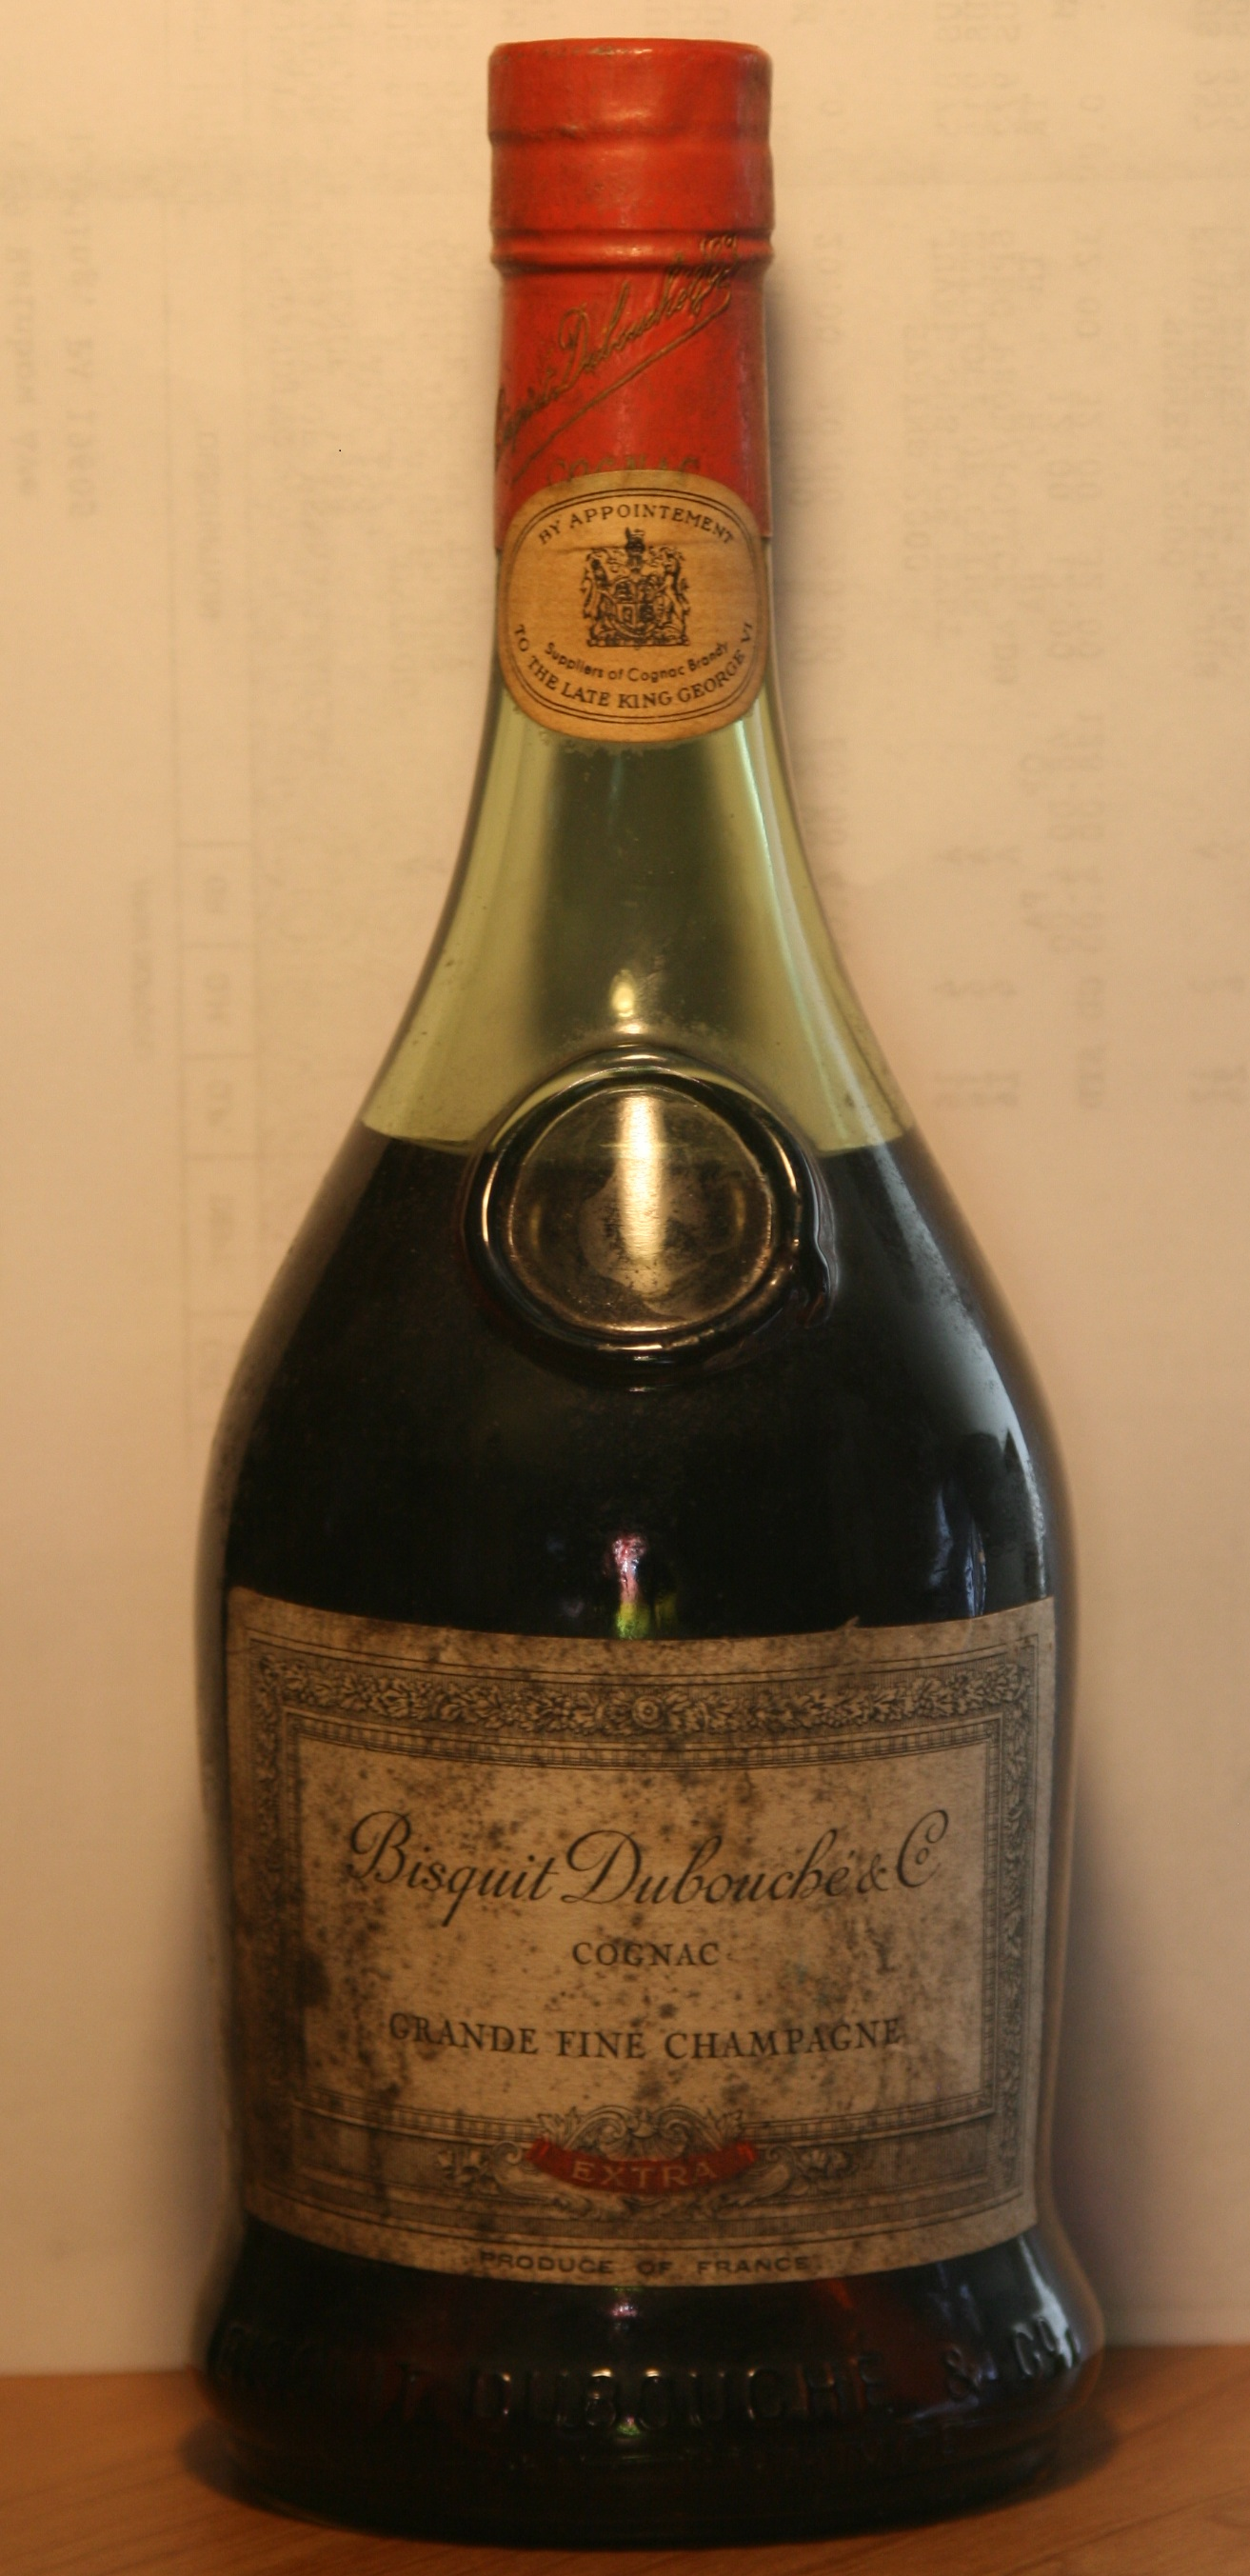 Old Bisquit Dubouche & Co Extra Grande Fine Champagne Cognac Bottle